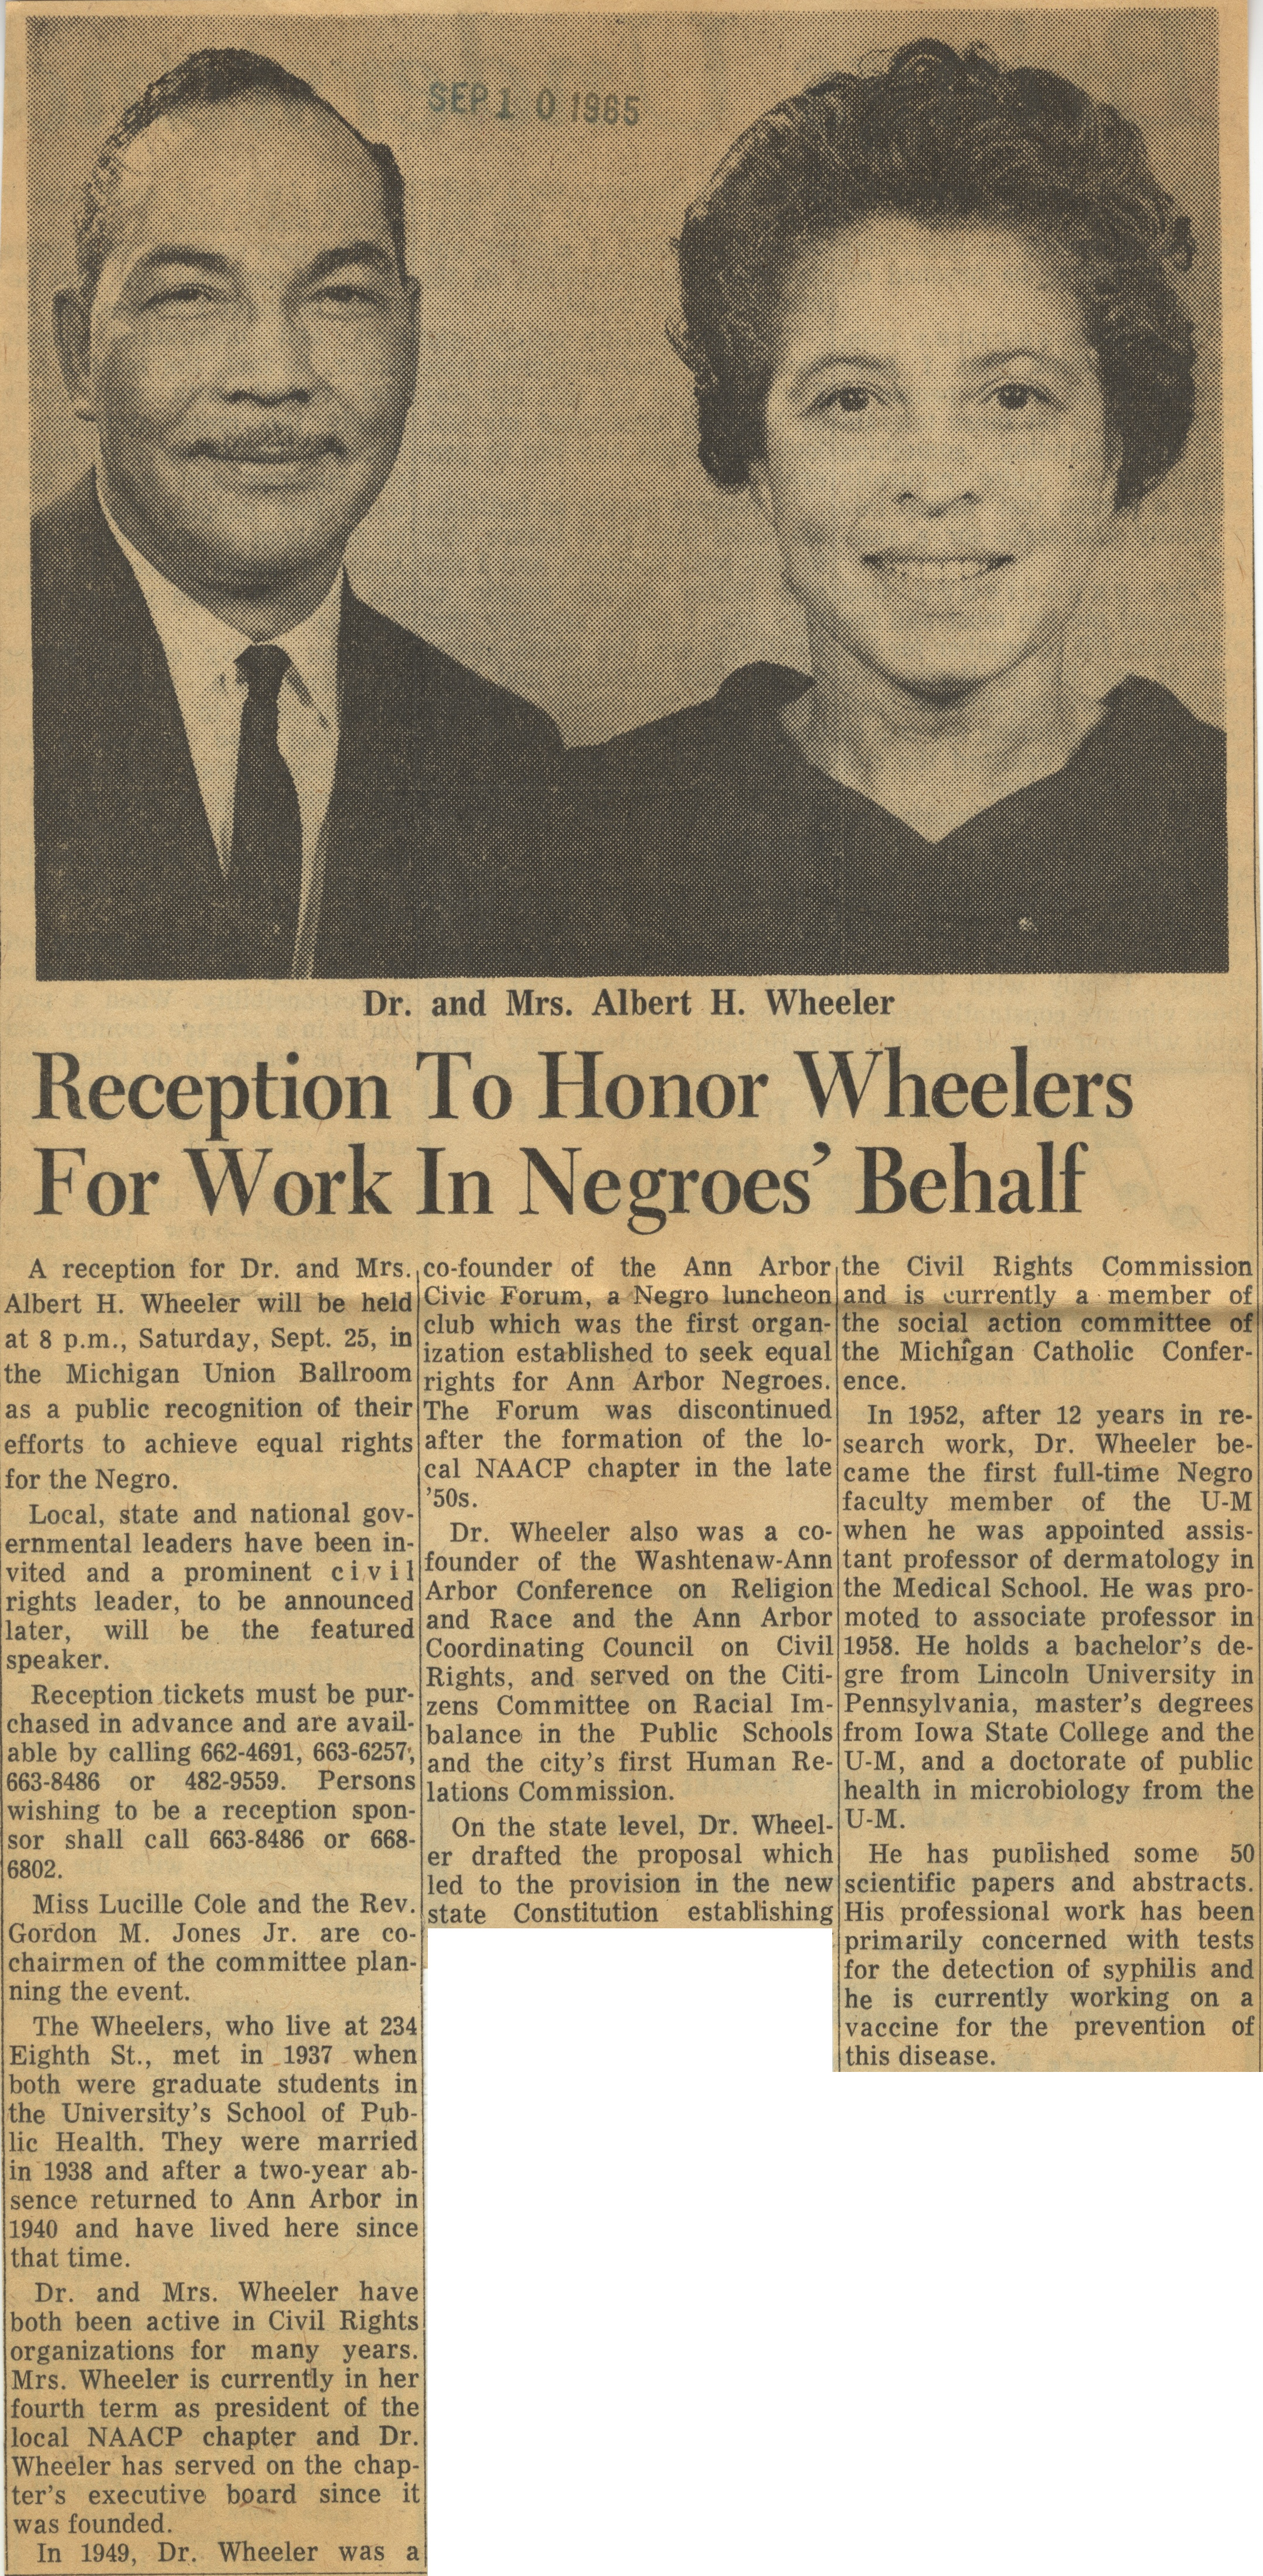 Reception To Honor Wheelers For Work In Negroes' Behalf image